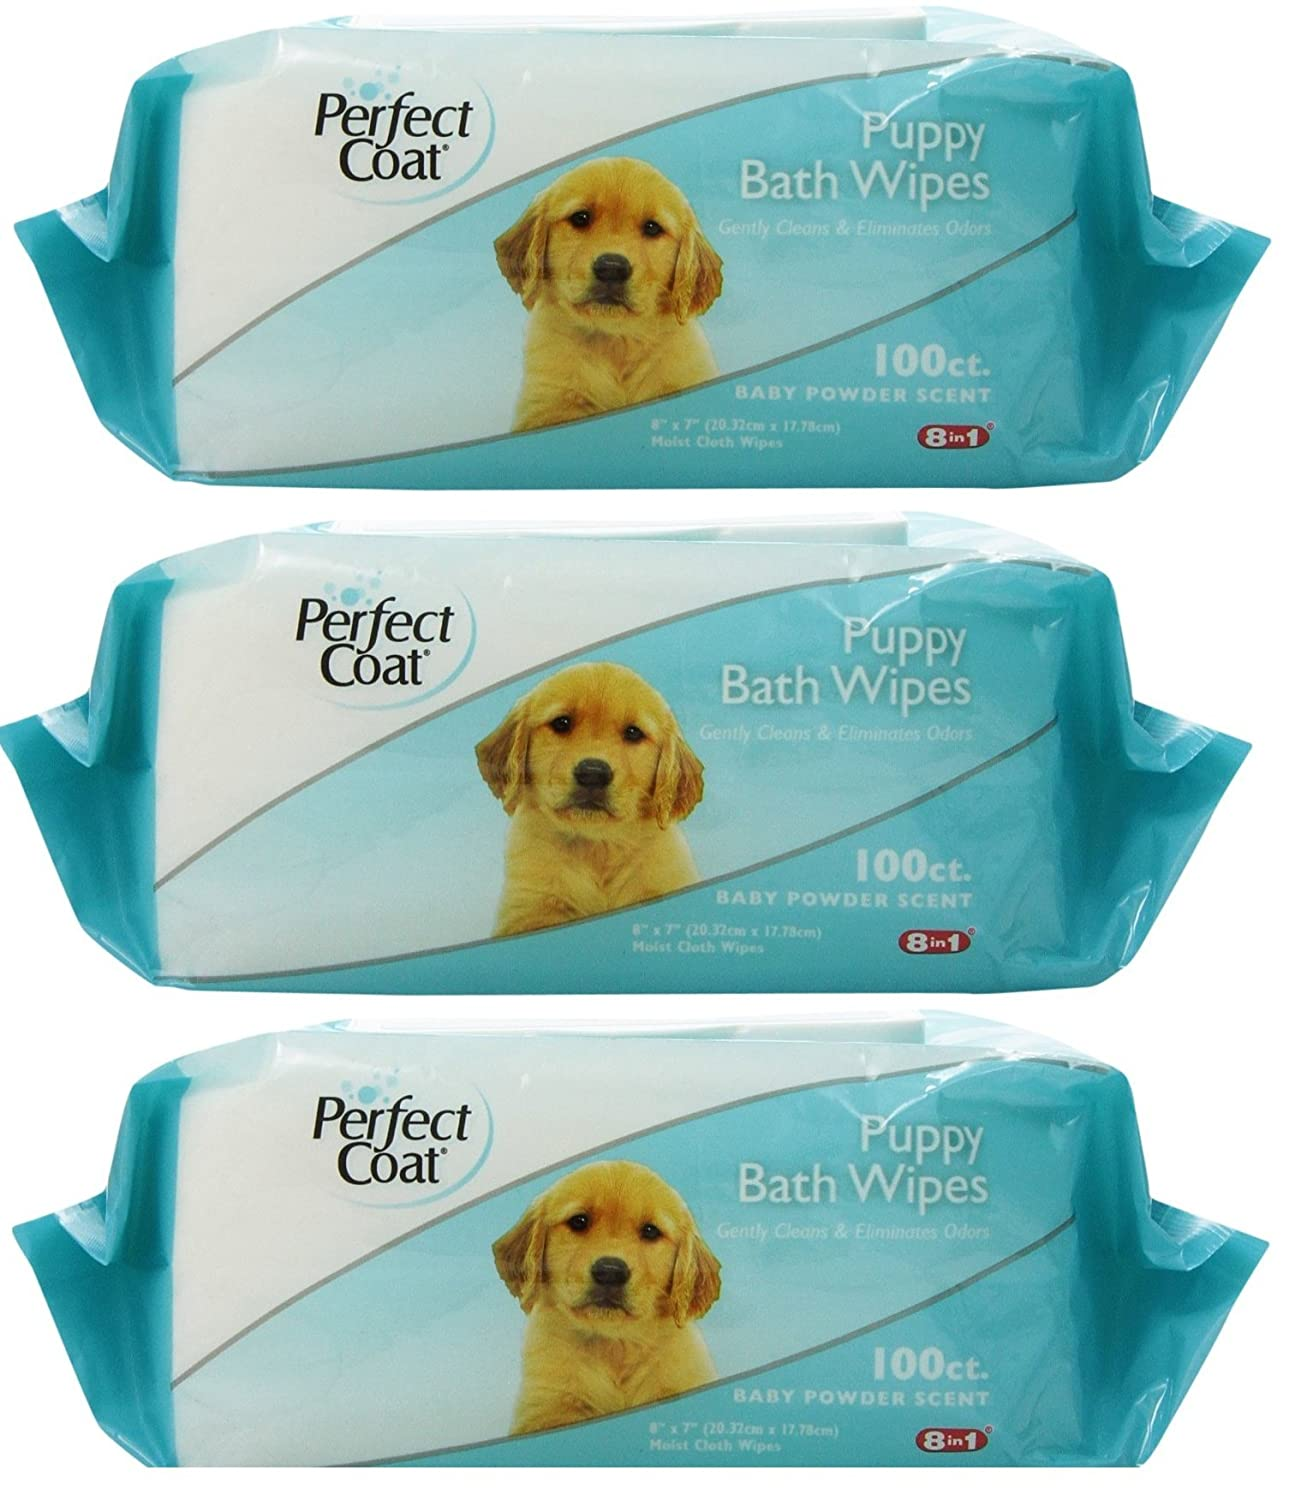 8in1 Perfect Coat Bath Wipes Tub 300 Total (3 Packs with 100 Wipes per Pack)